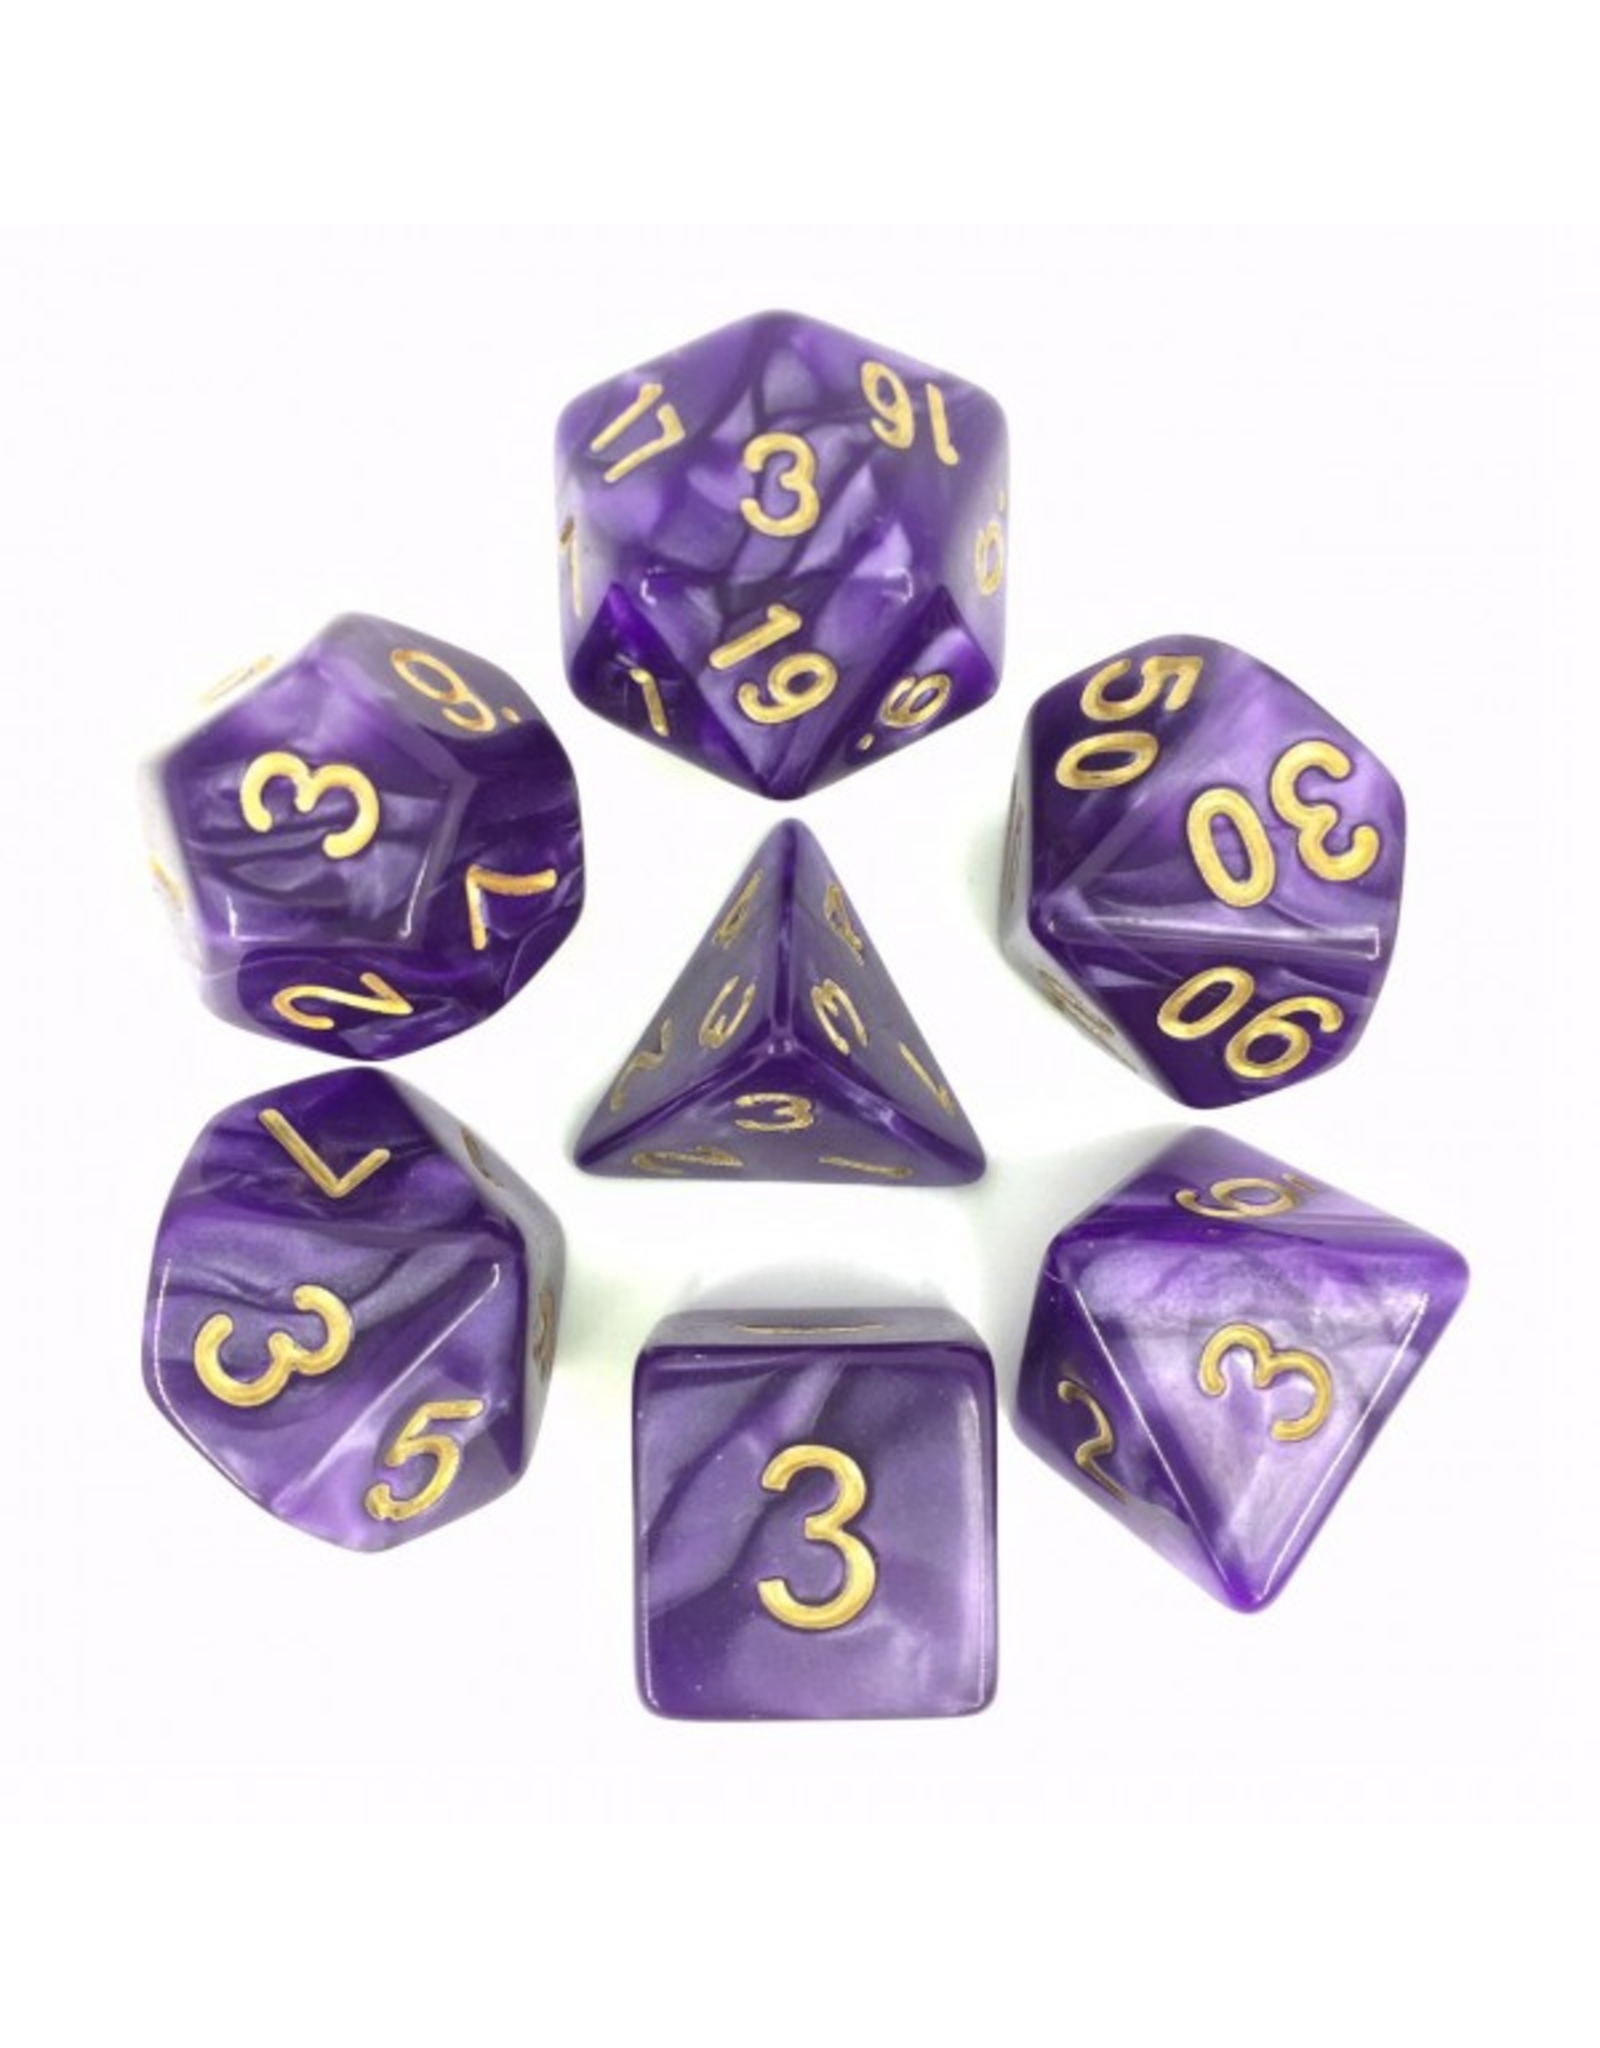 HD Dice Dice: 7-Set Pearl Purple with Gold Numbers (HD)